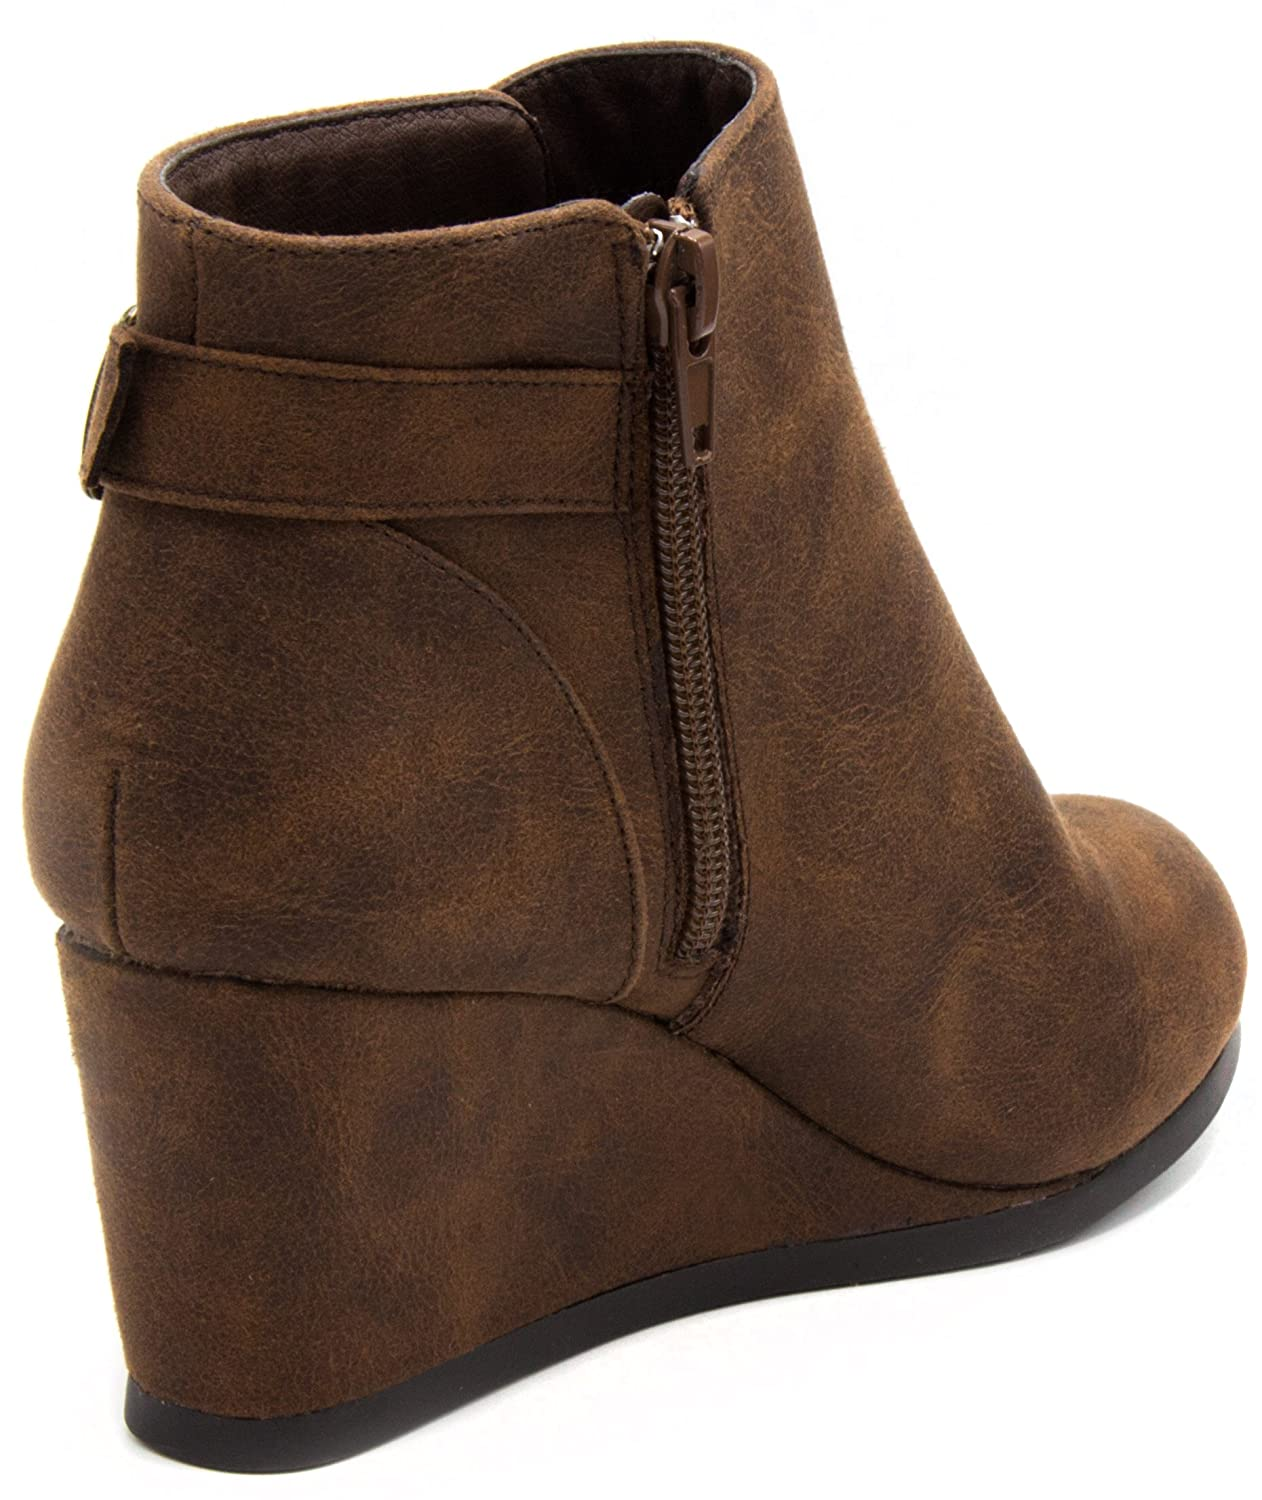 3234b35e2e6 Amazon.com  Sugar Women s Megan Wedge Bootie with Buckle Ankle Boot  Shoes